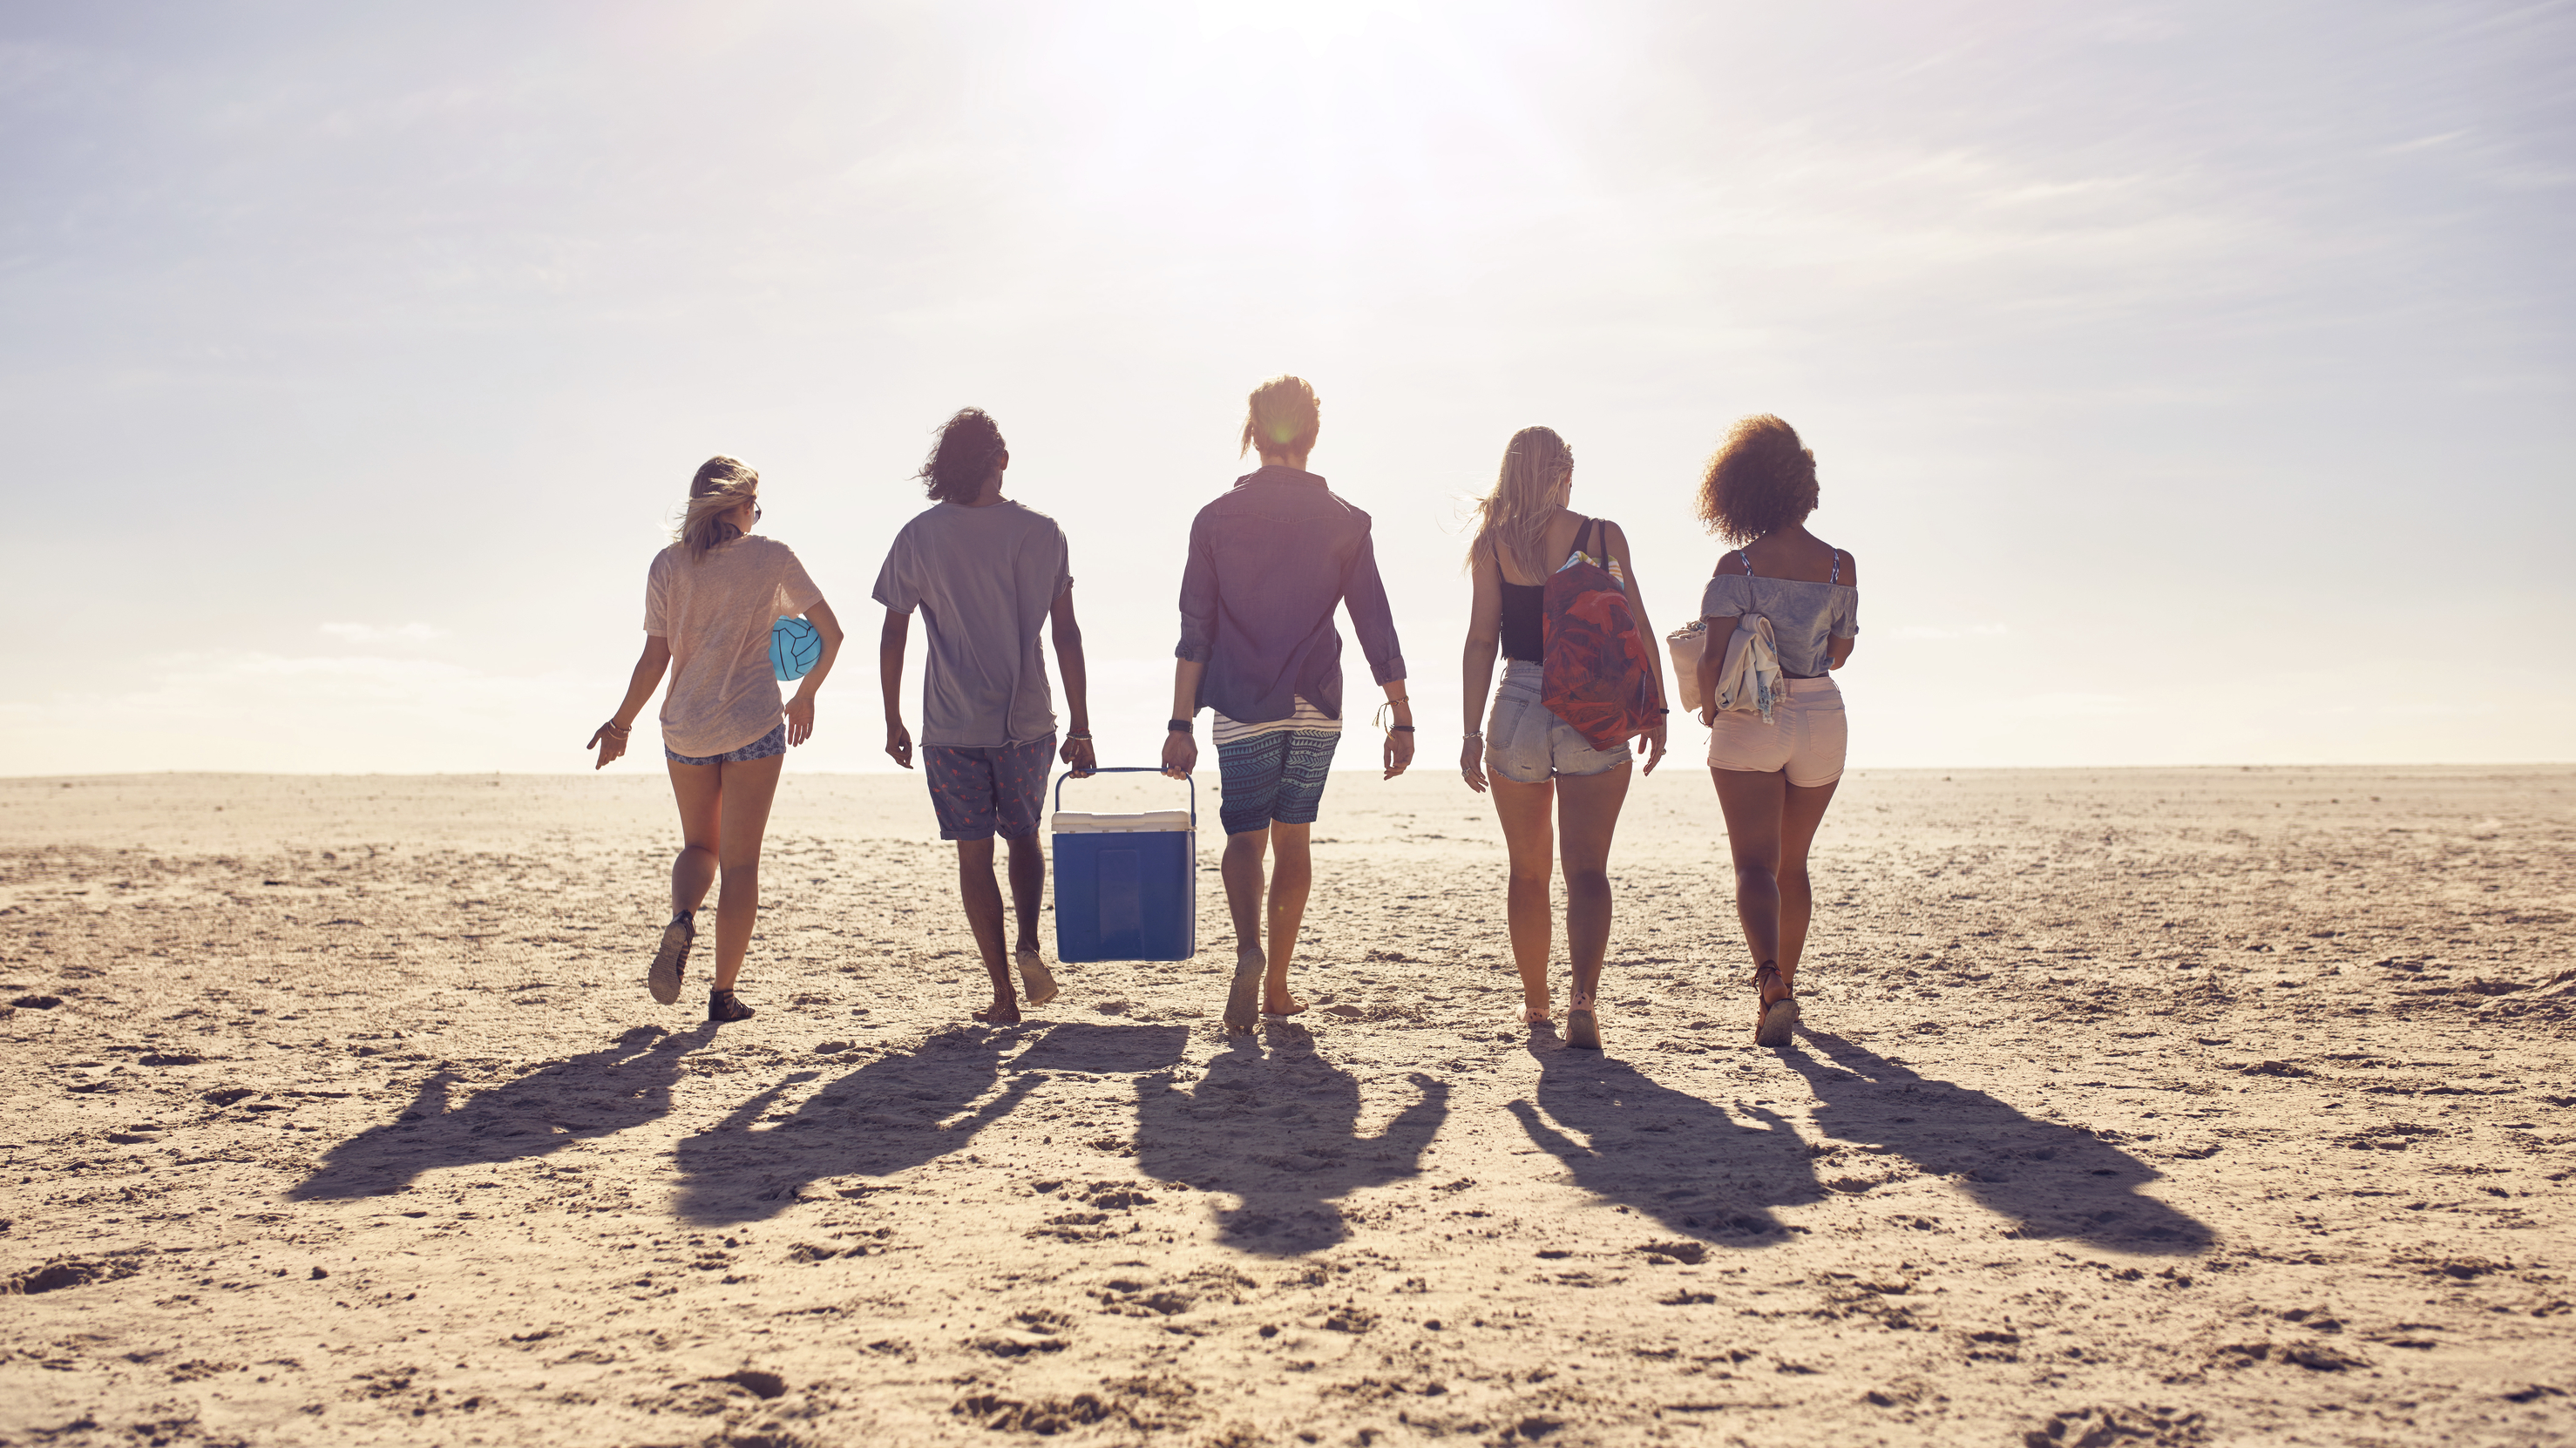 The 5 Personality Types and What They Can Mean in Recovery